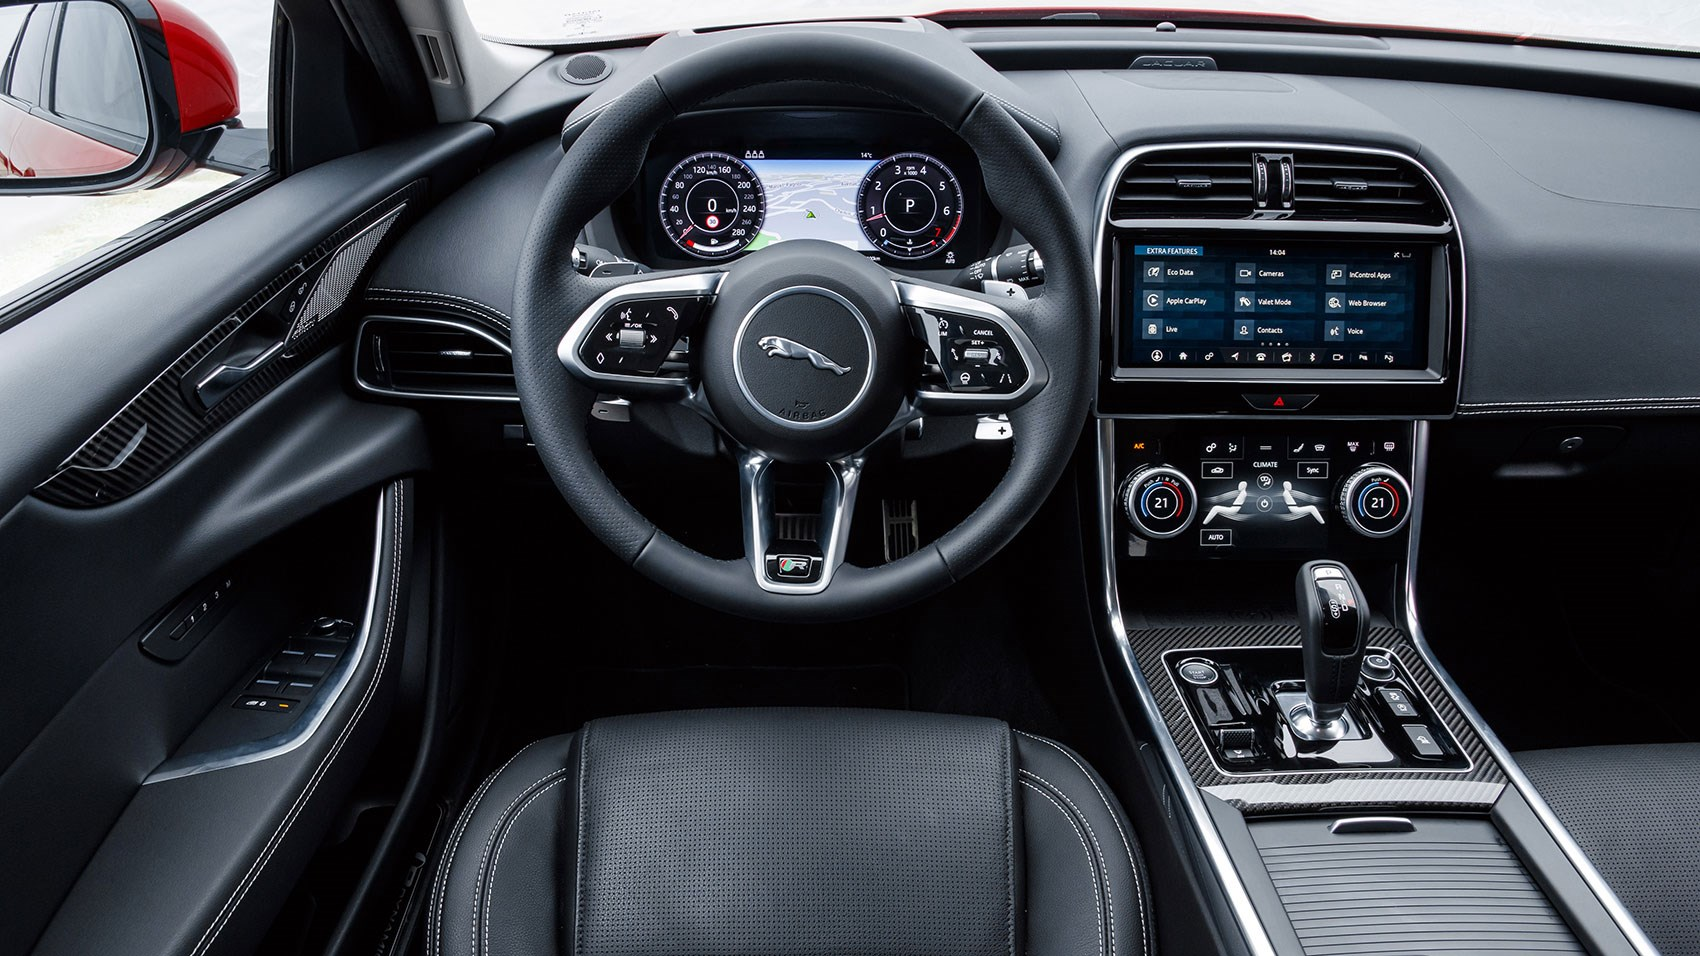 Jaguar XE saloon interior 2020 model year